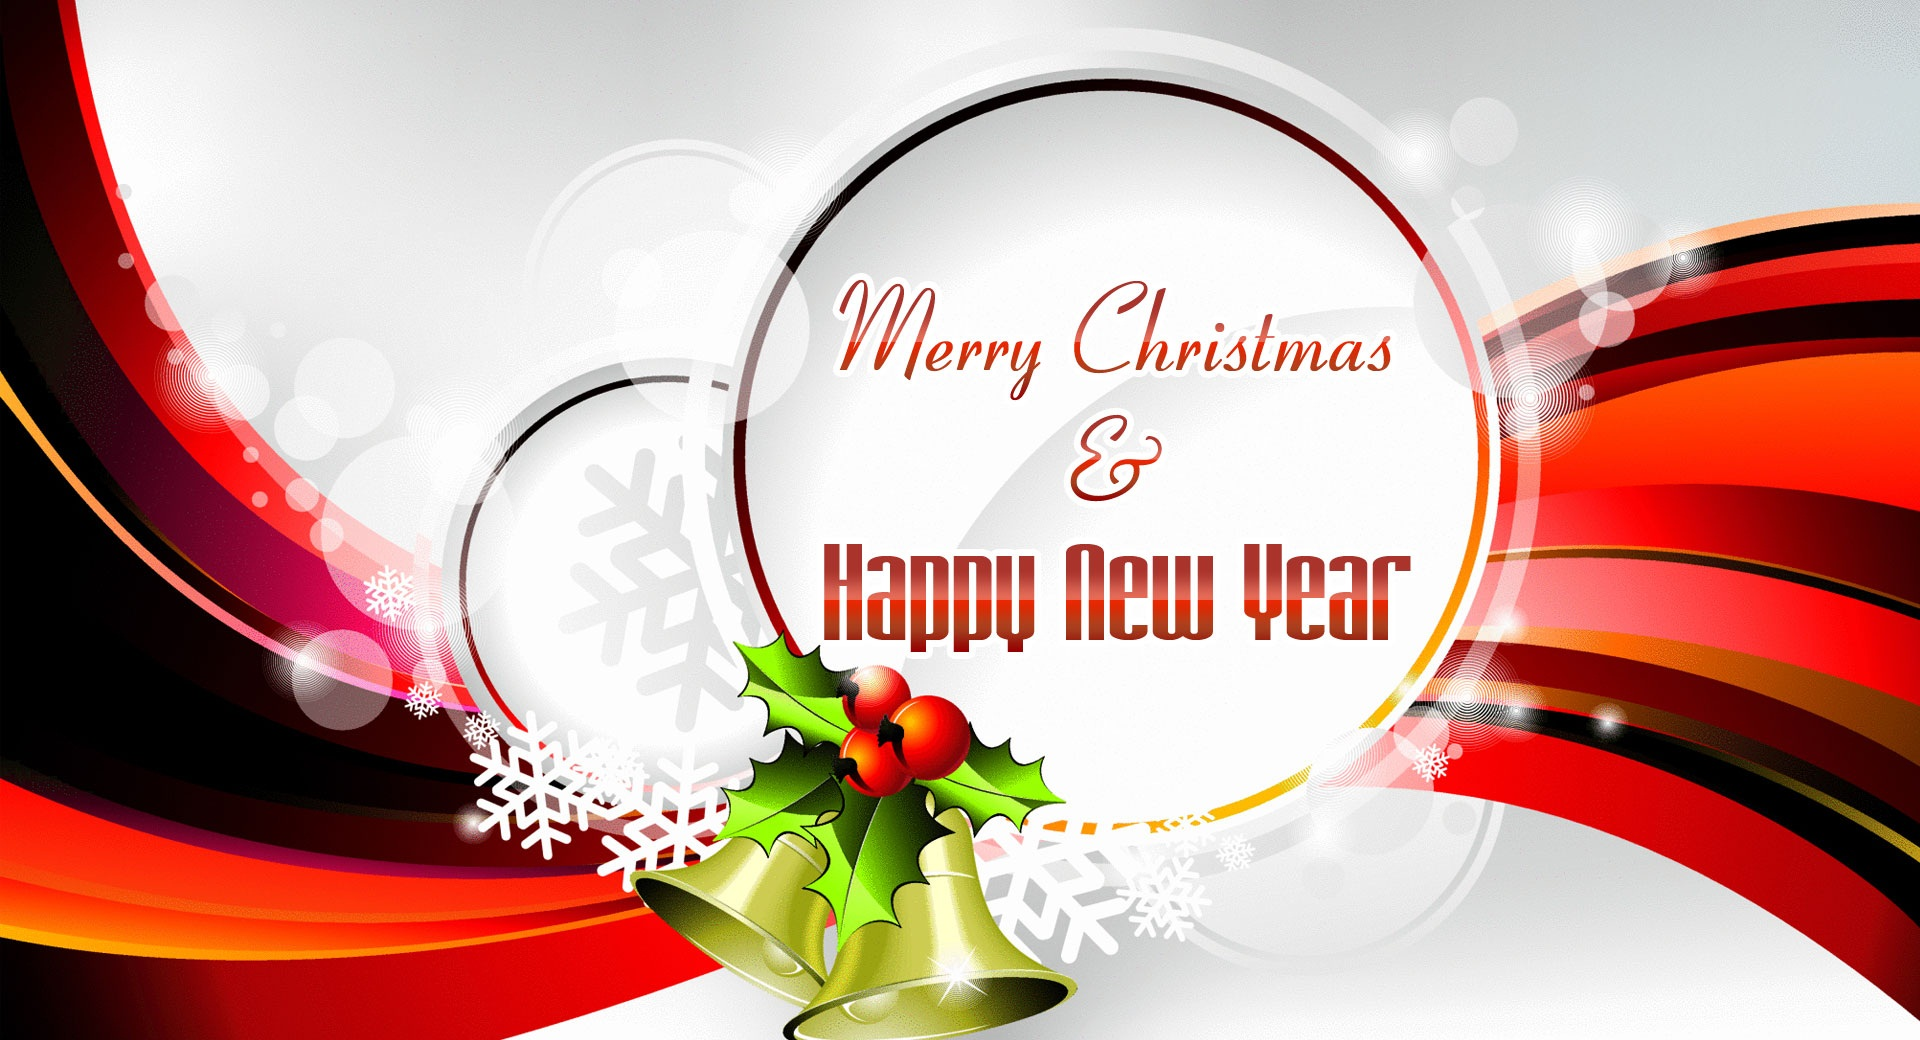 Merry Christmas and a Happy New Year 2014